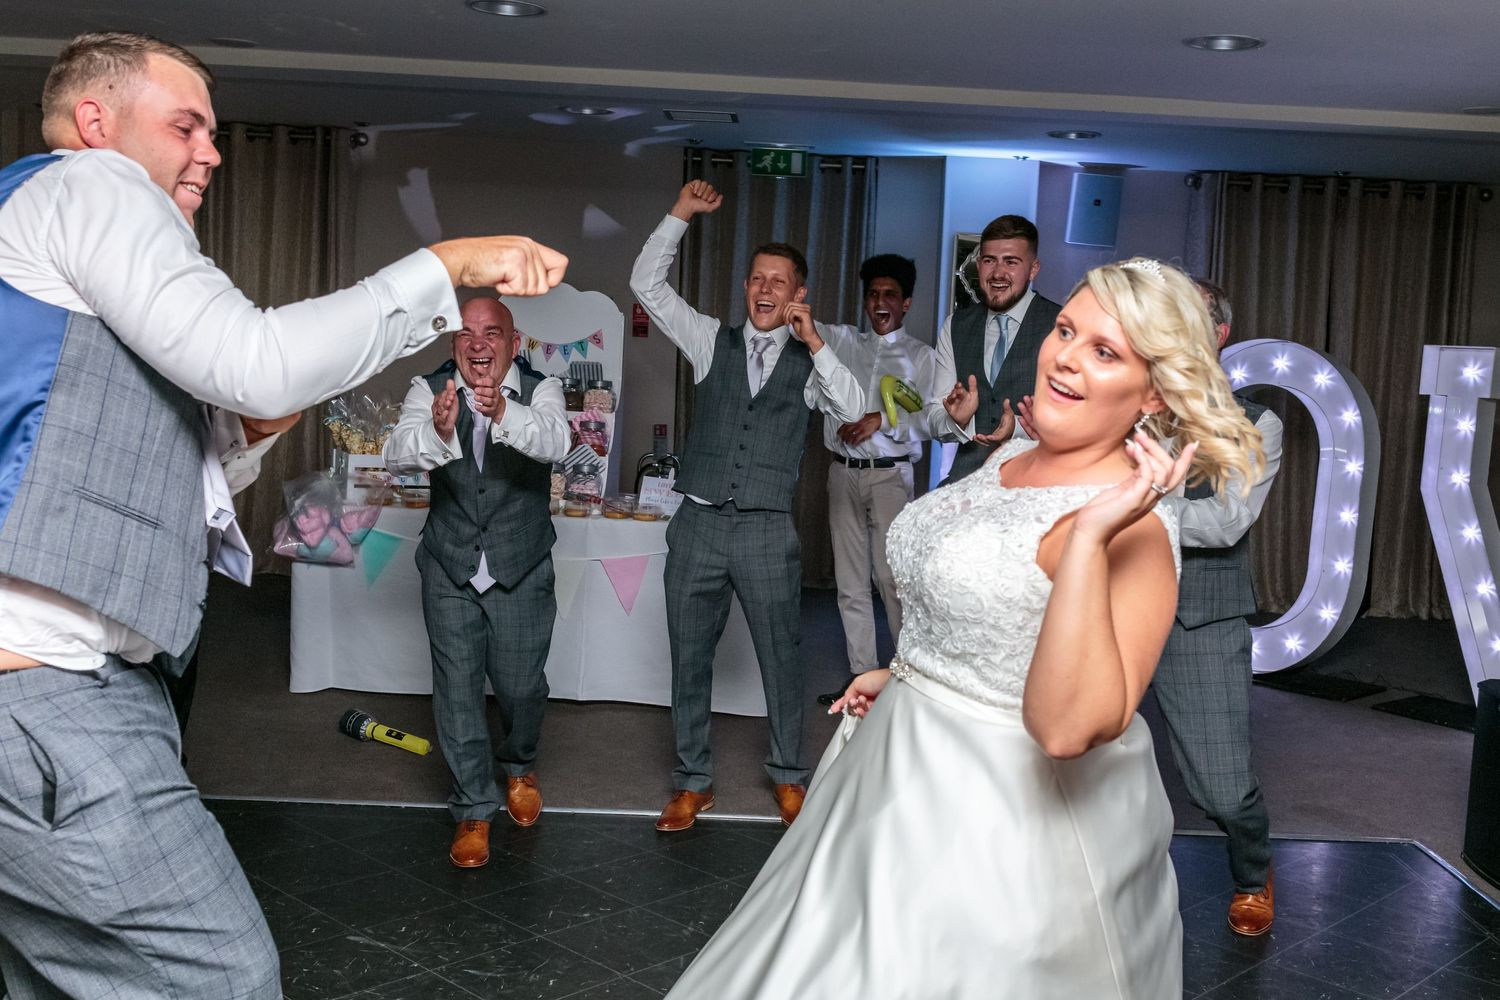 bride struggles as she is hooked by the groom during his dance solo as the groomsmen cheer in the background